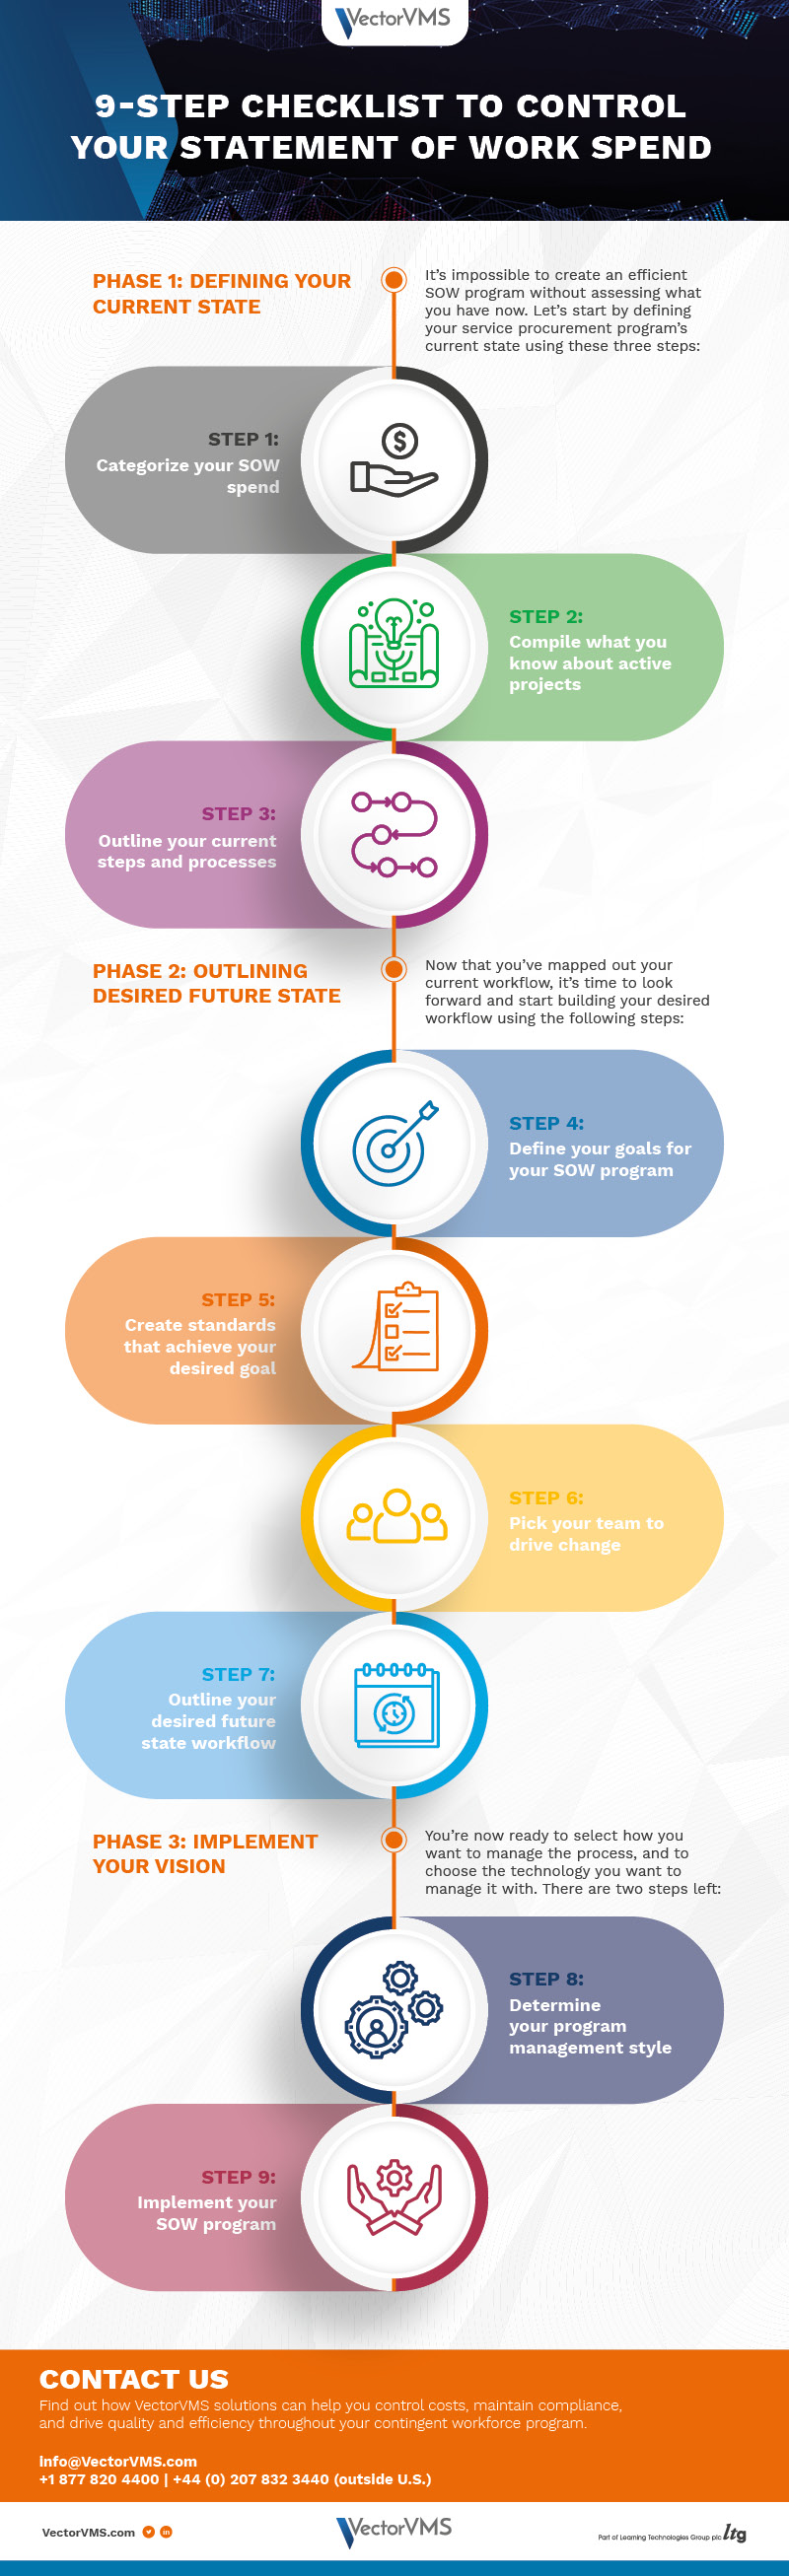 Vector VMS 9 Steps control SOW statement of work spend infographic